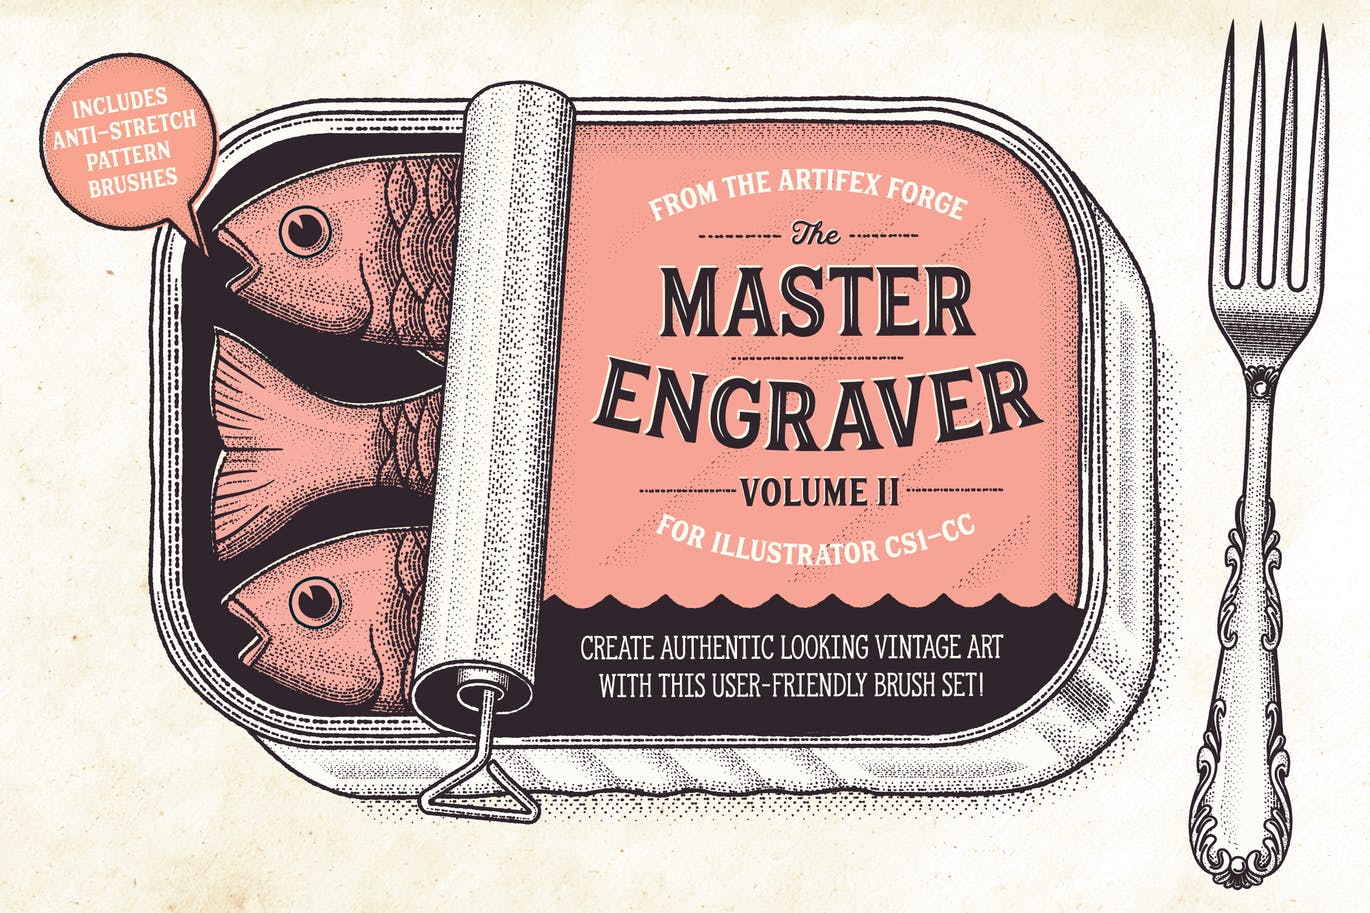 The Master Engraver brushes